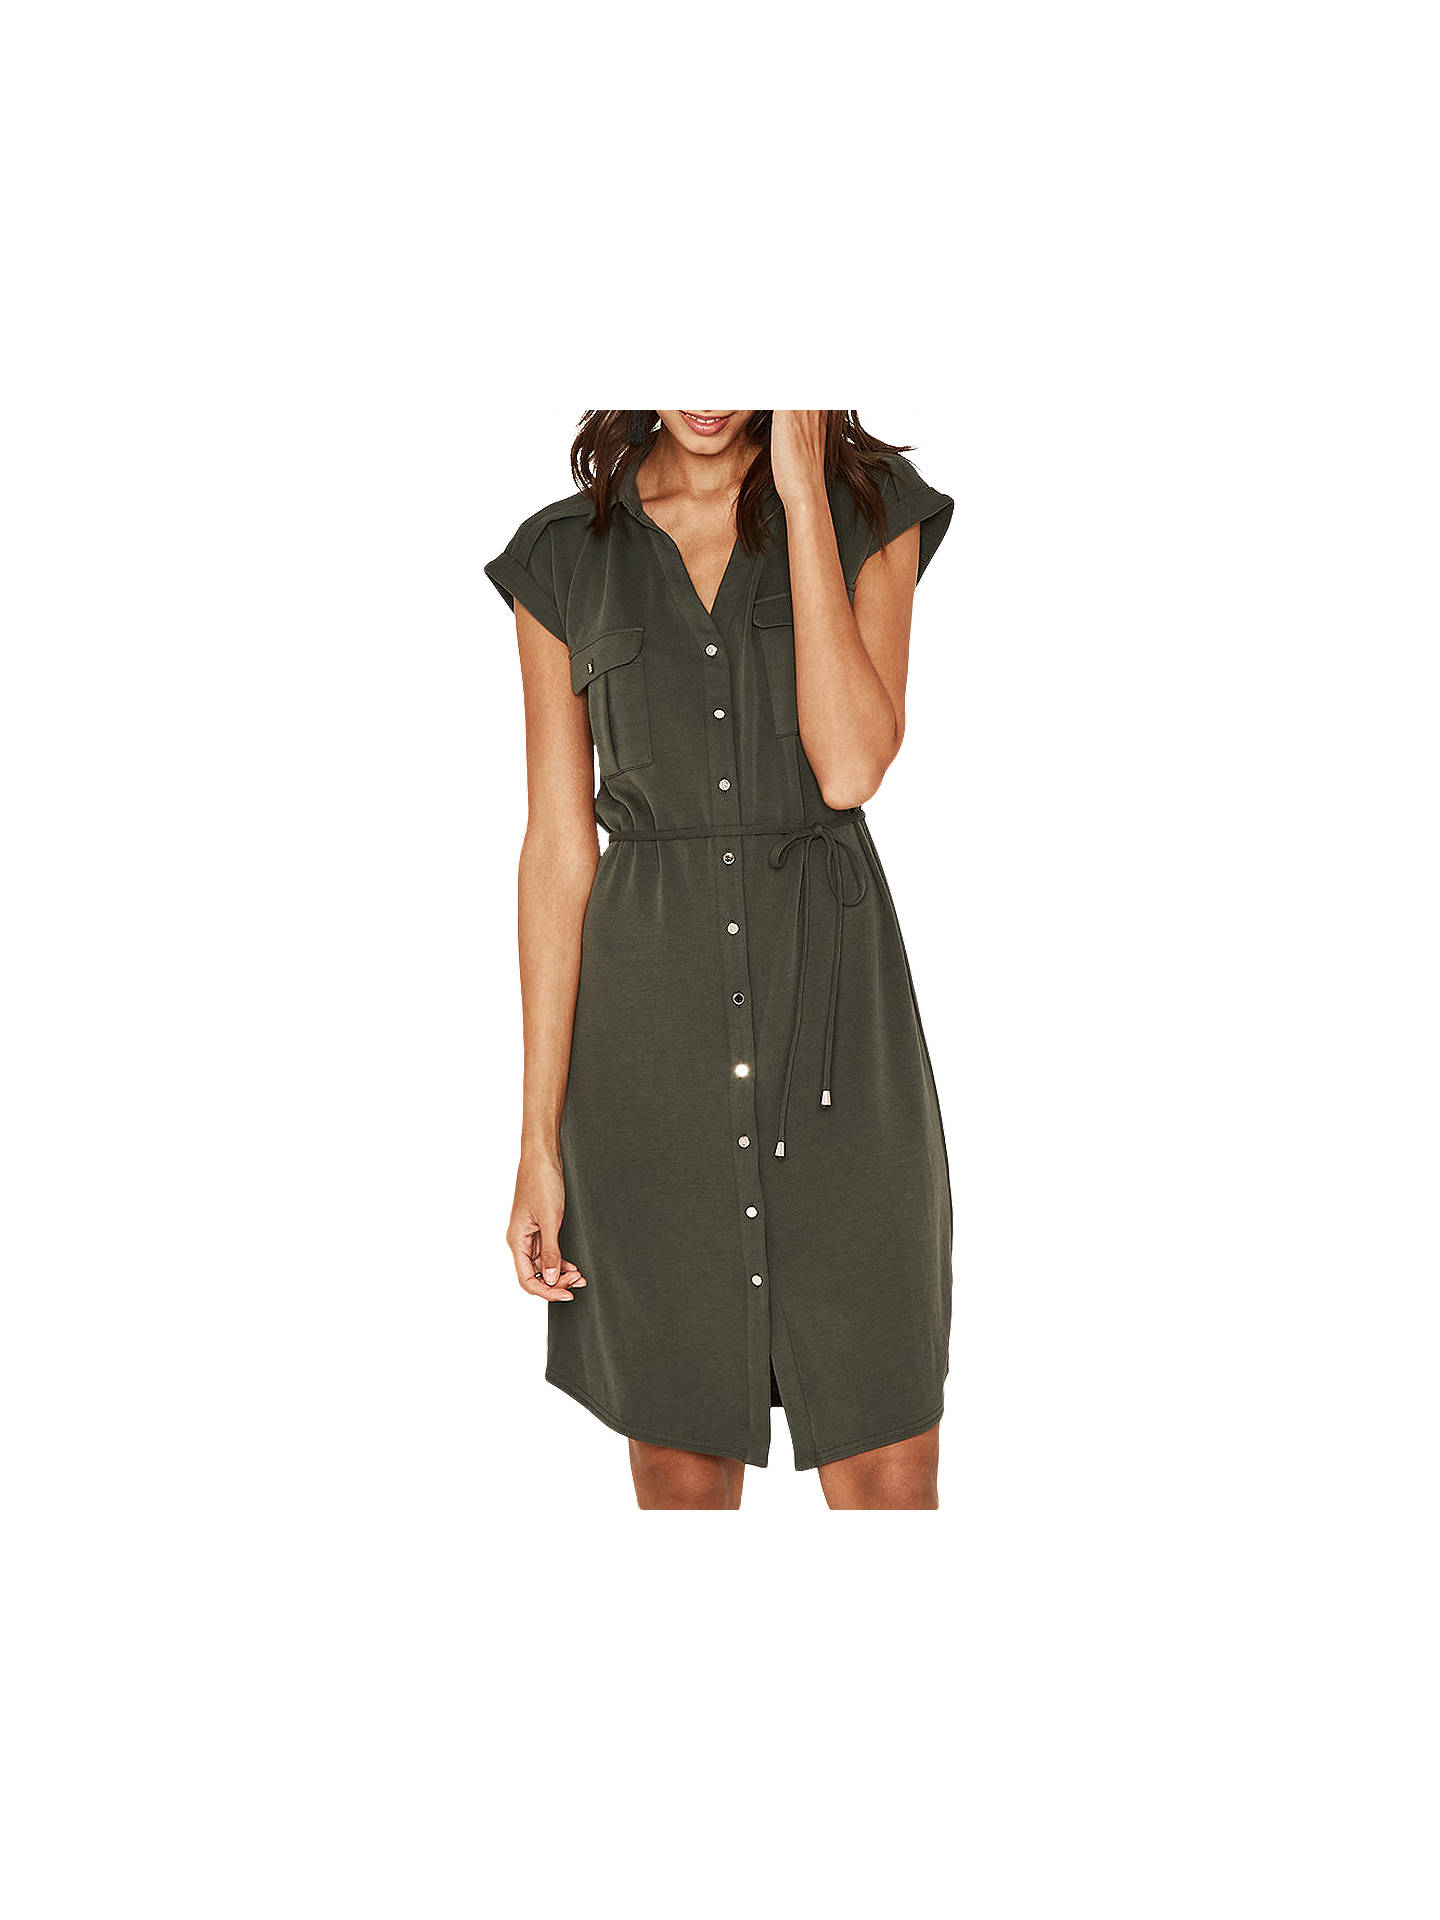 31748c34cb82 Buy Oasis Shirt Dress, Khaki, XS Online at johnlewis.com ...